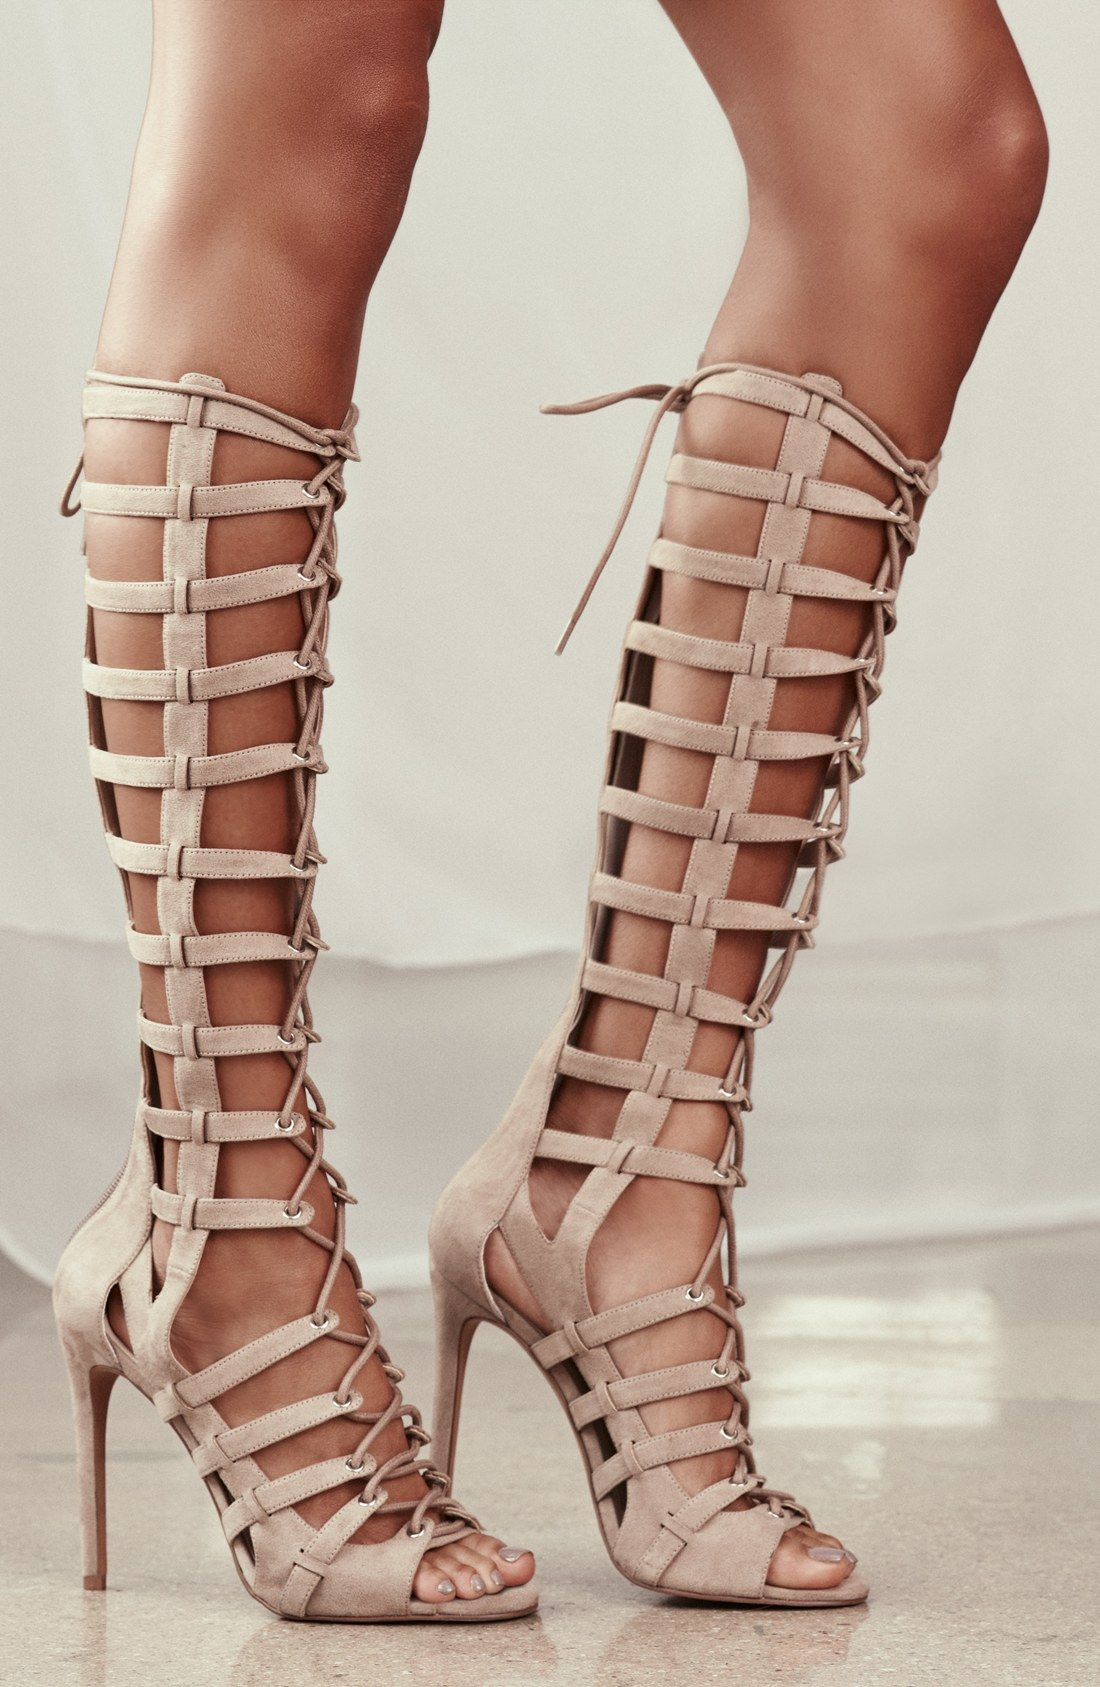 KENDALL + KYLIE 'Emily' Tall Gladiator Sandal ...